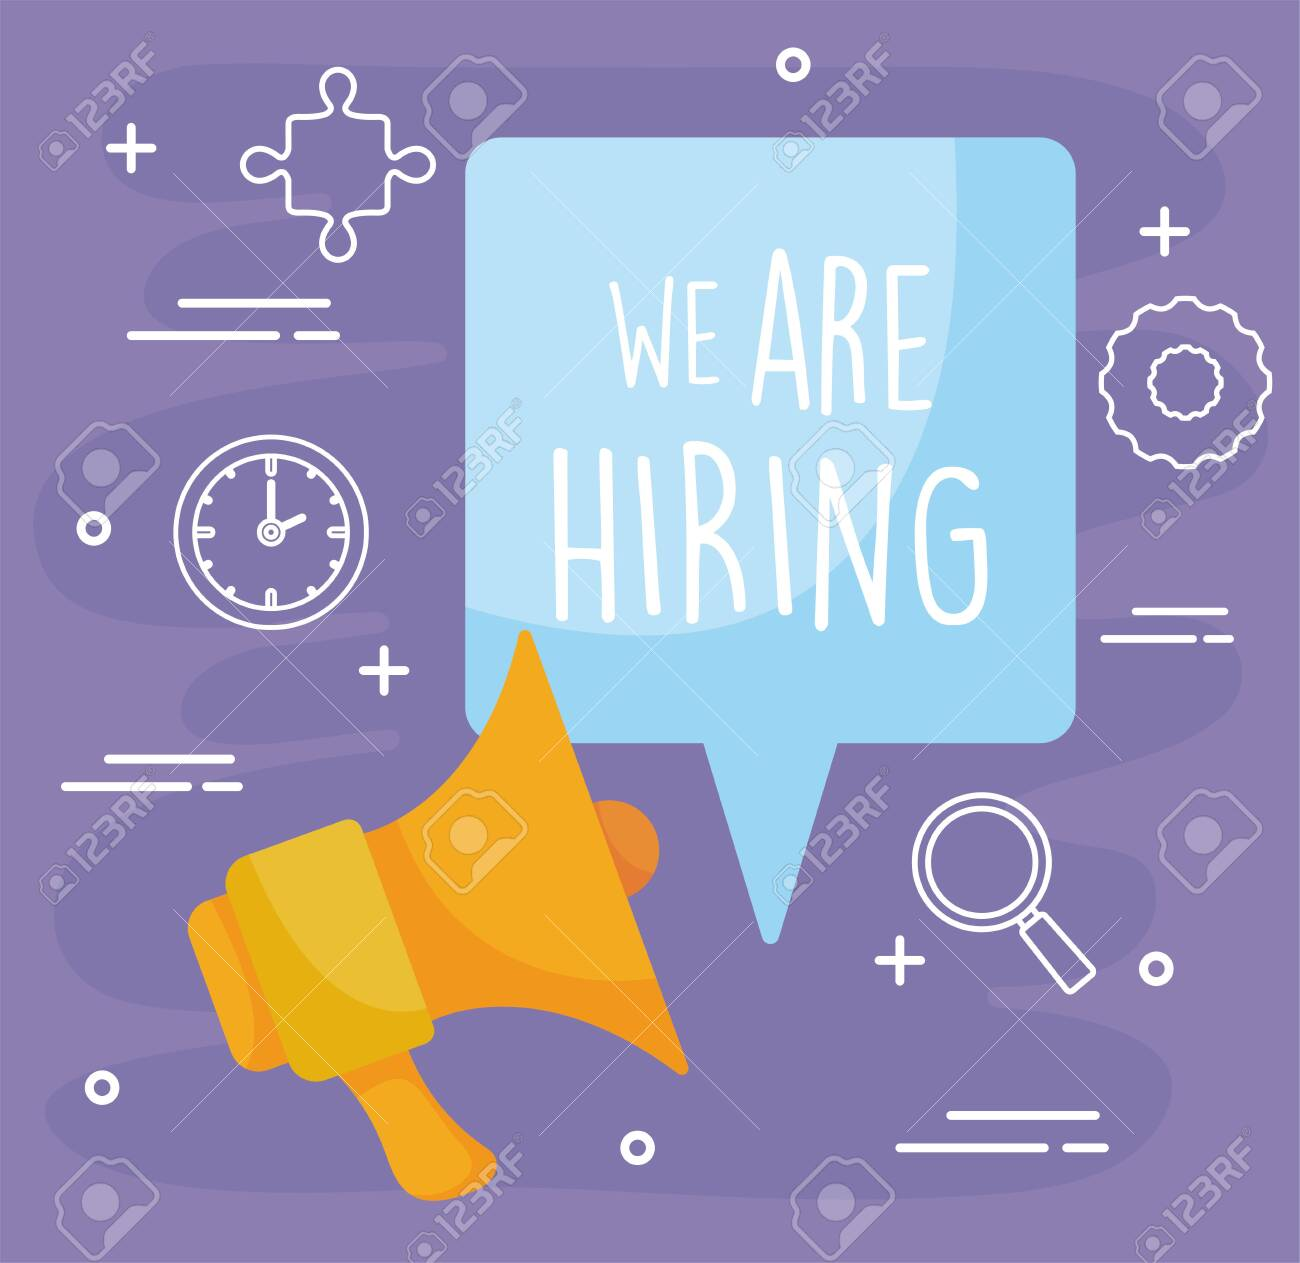 We are hiring message with megaphone design, job work employee business employment career recruitment wanted interview employer and recruit theme Vector illustration - 142084784